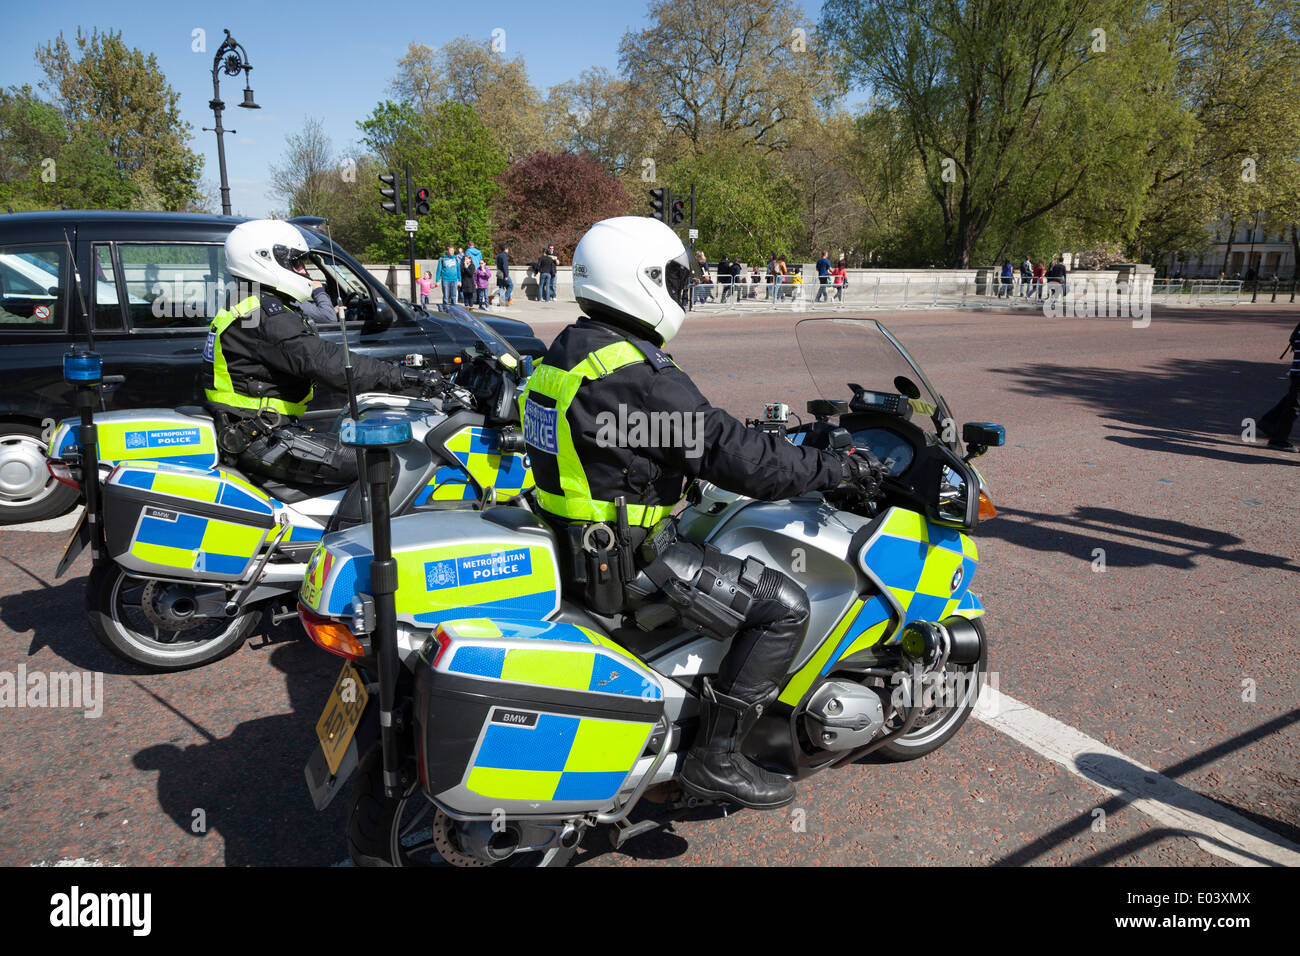 Two armed Metropolitan Police Motorcyclists. - Stock Image